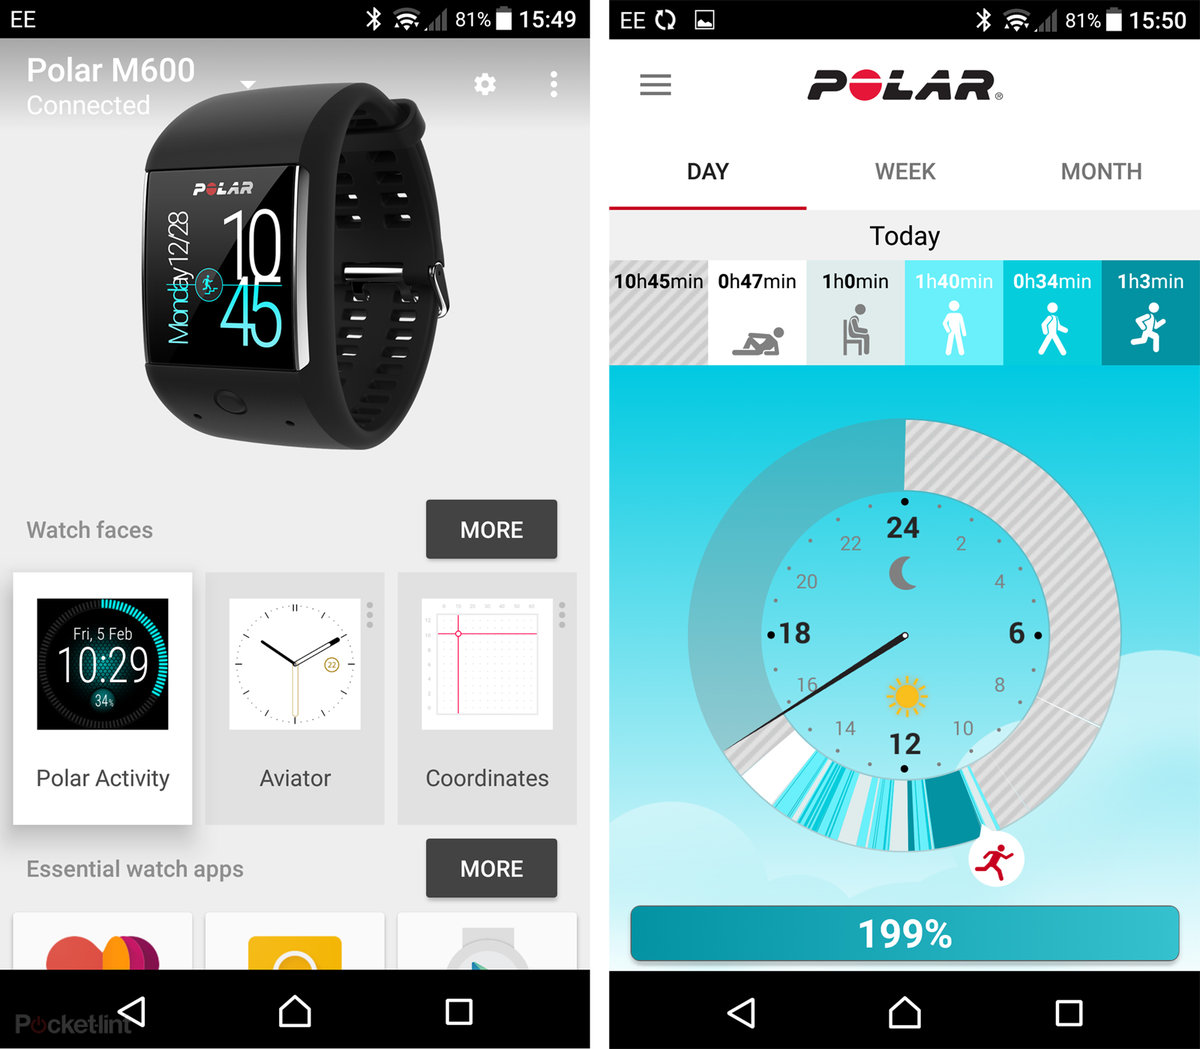 Polar M600 review: Top-notch smartwatch and fitness tracker fus